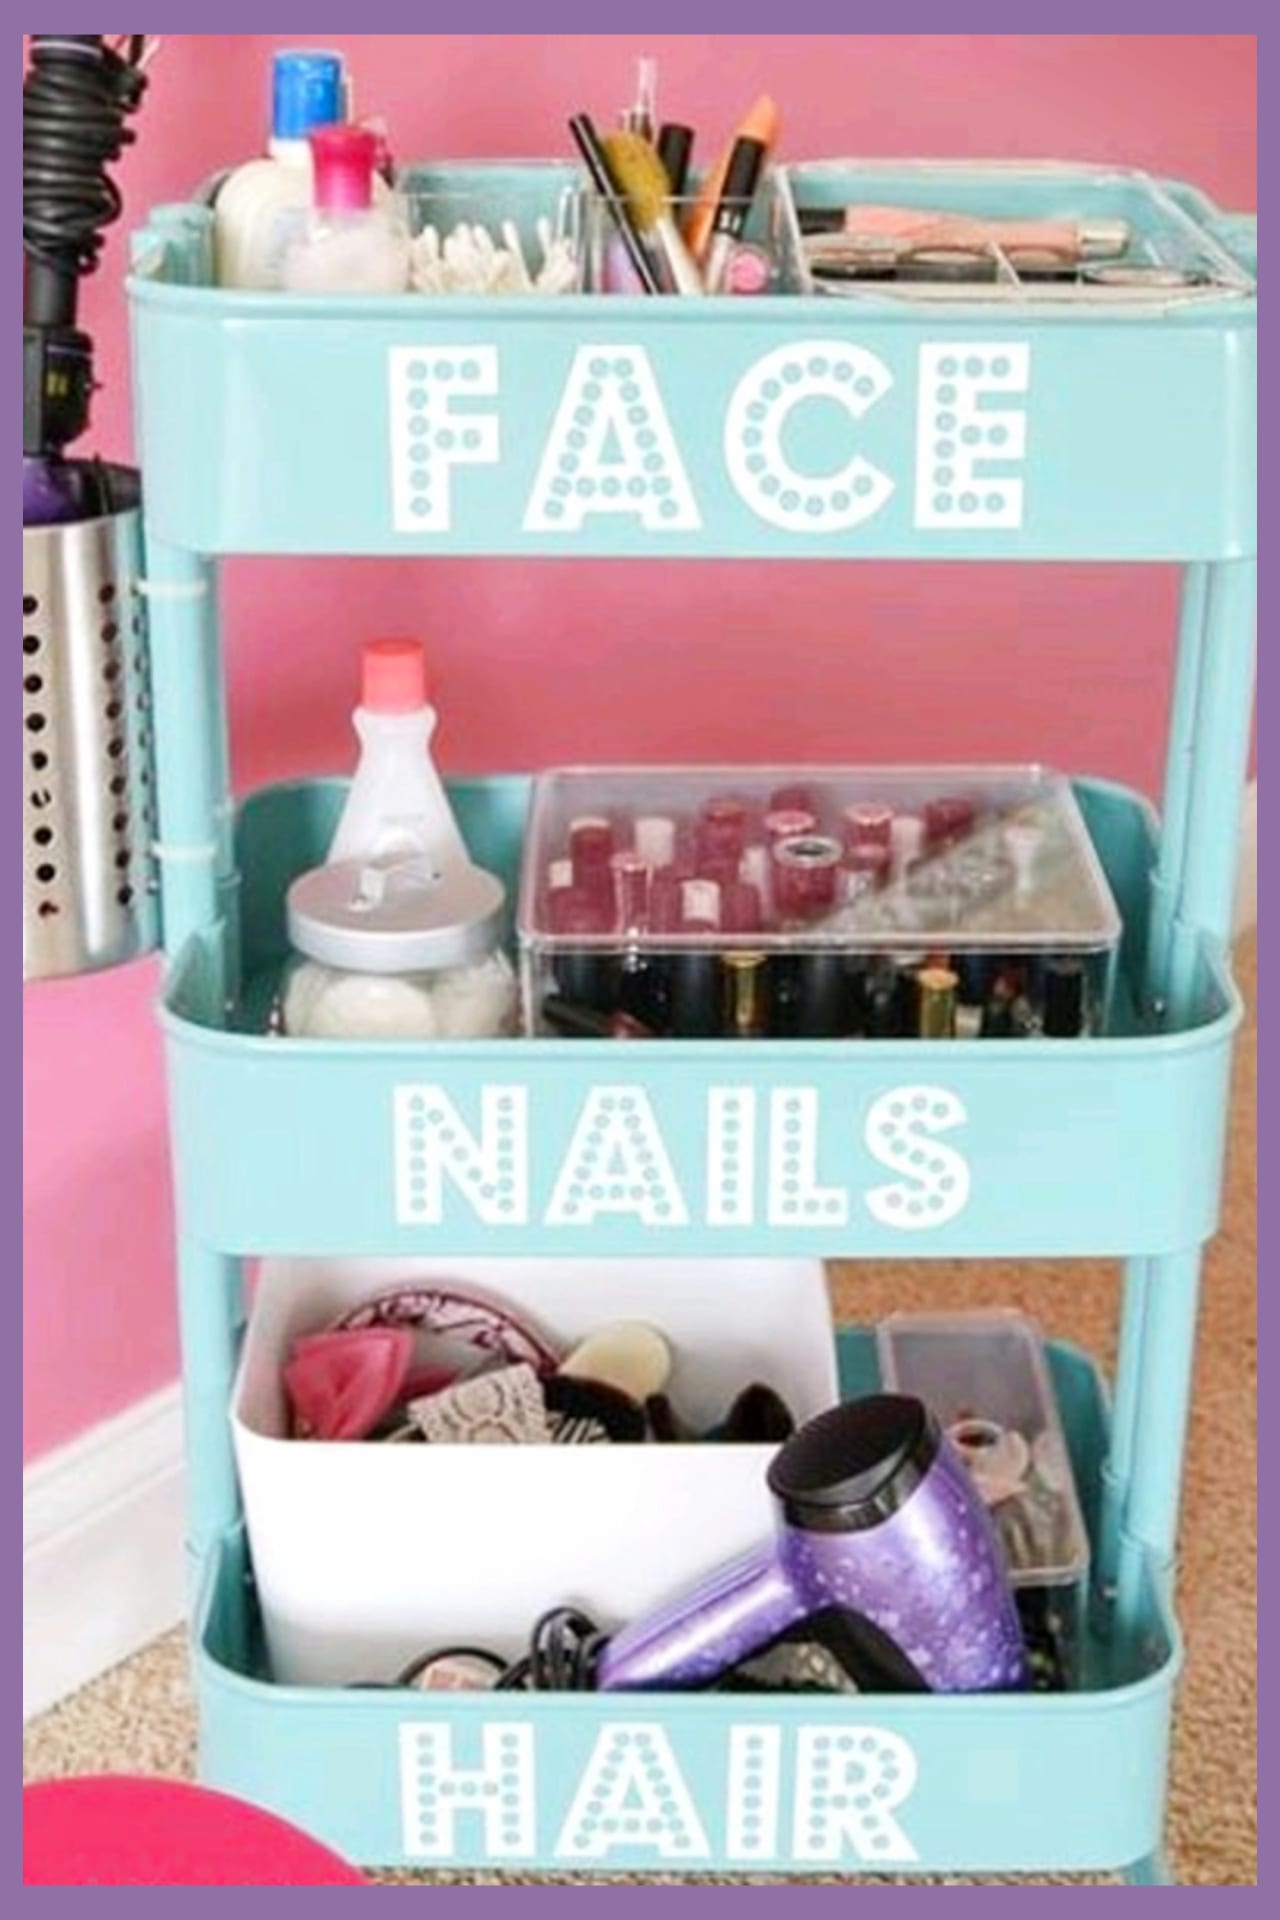 Organizing with baskets - cheap dollar stores organizer cart for organizing makeup, beauty supplies and ALL your bathroom clutter.  Creative organization hacks for small bathrooms and other small spaces.